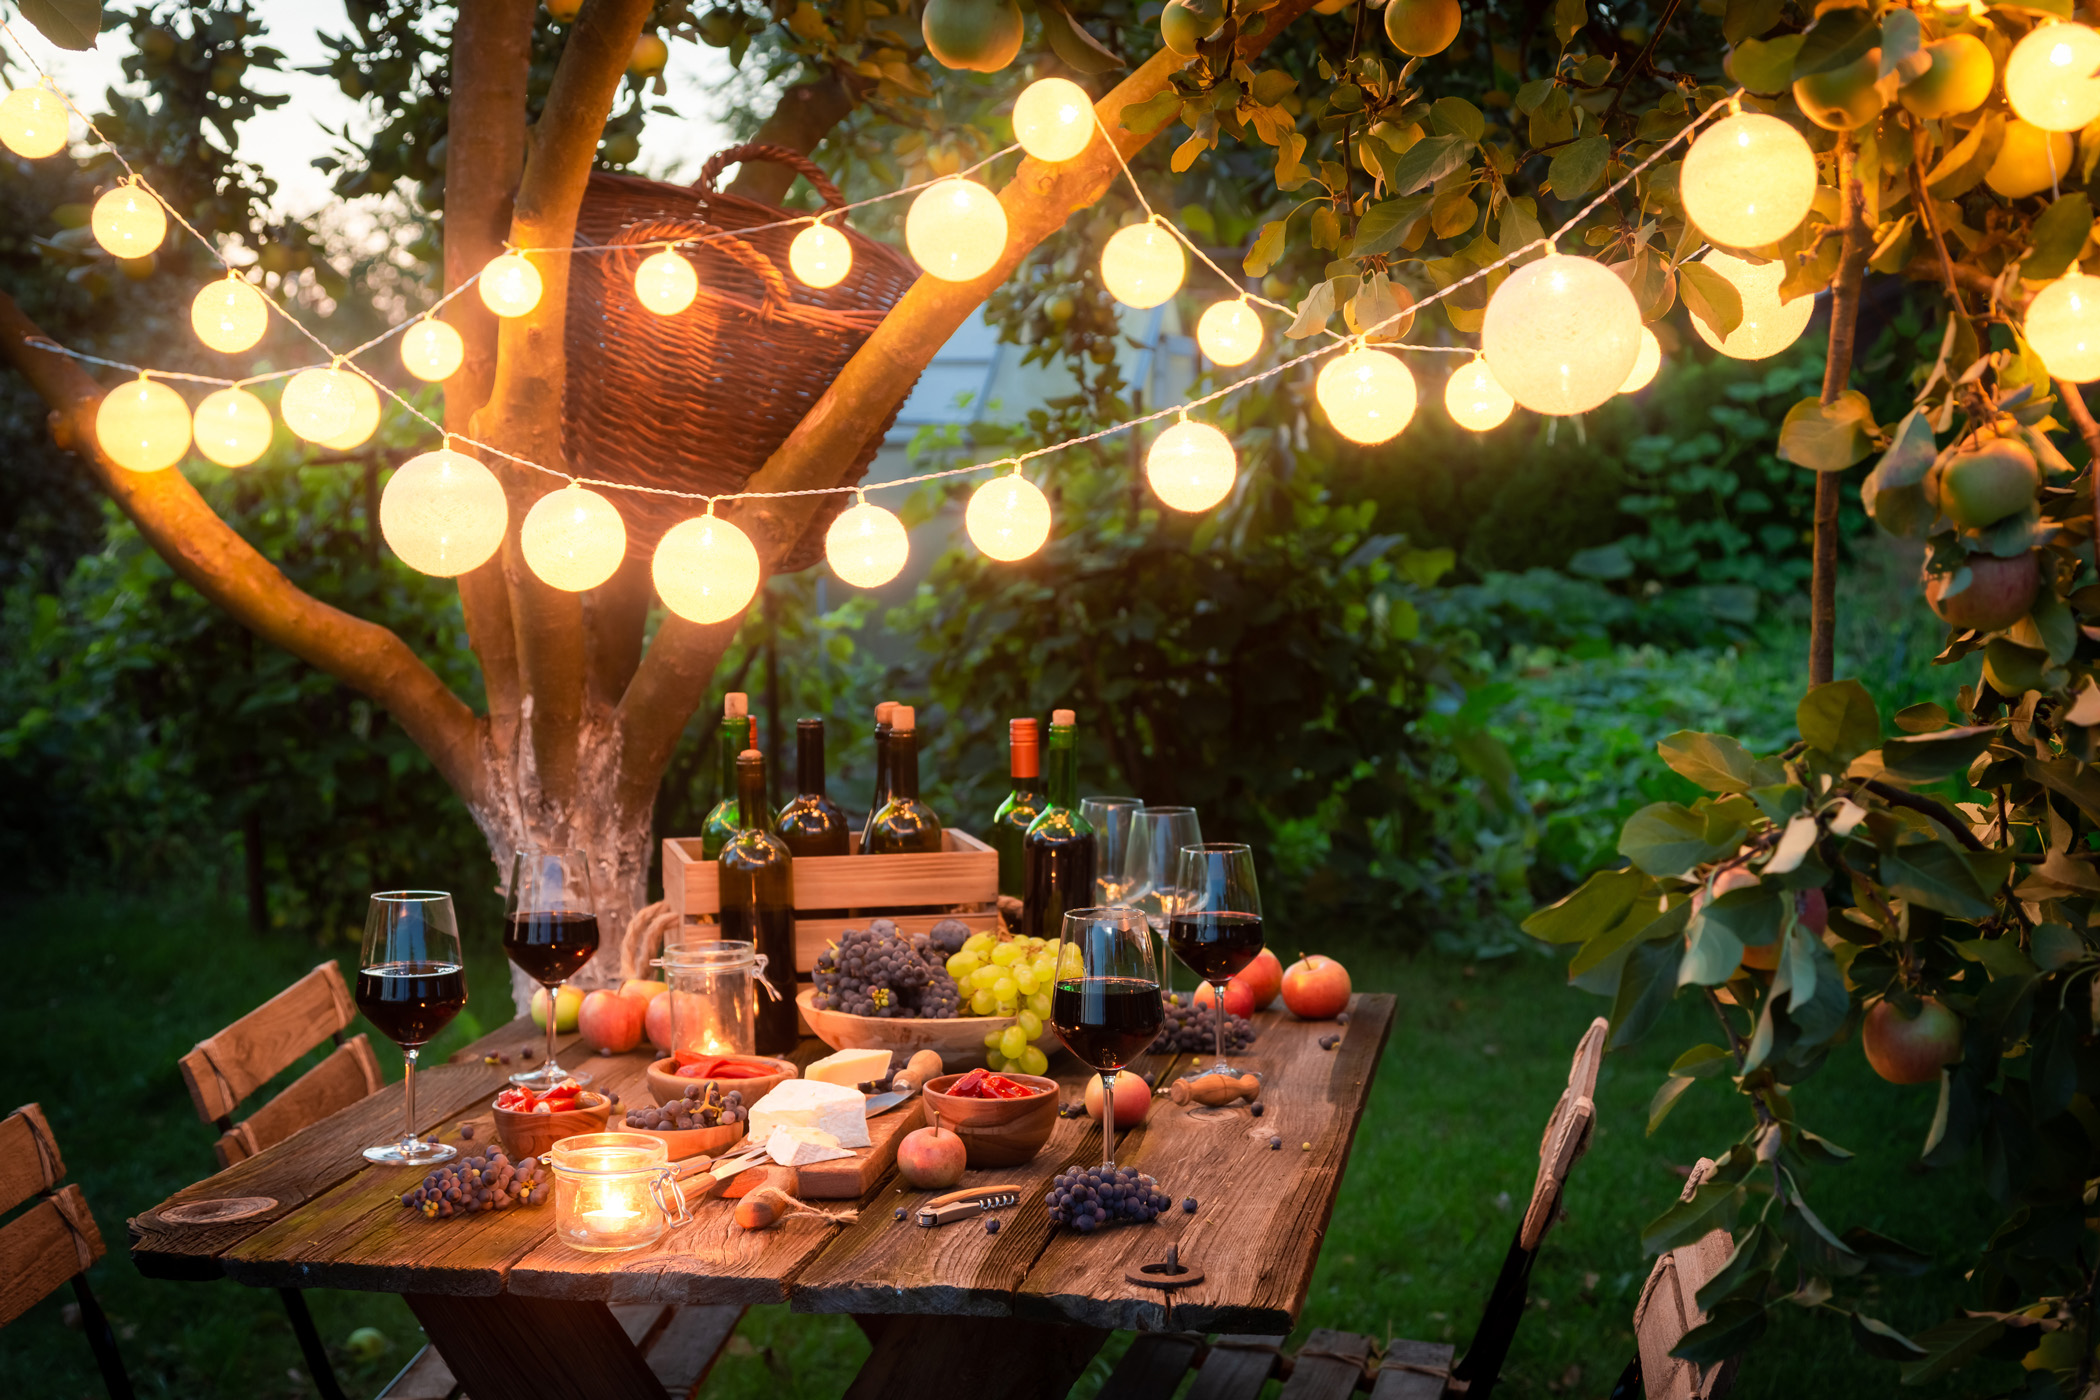 A summer soiree for cheese lovers